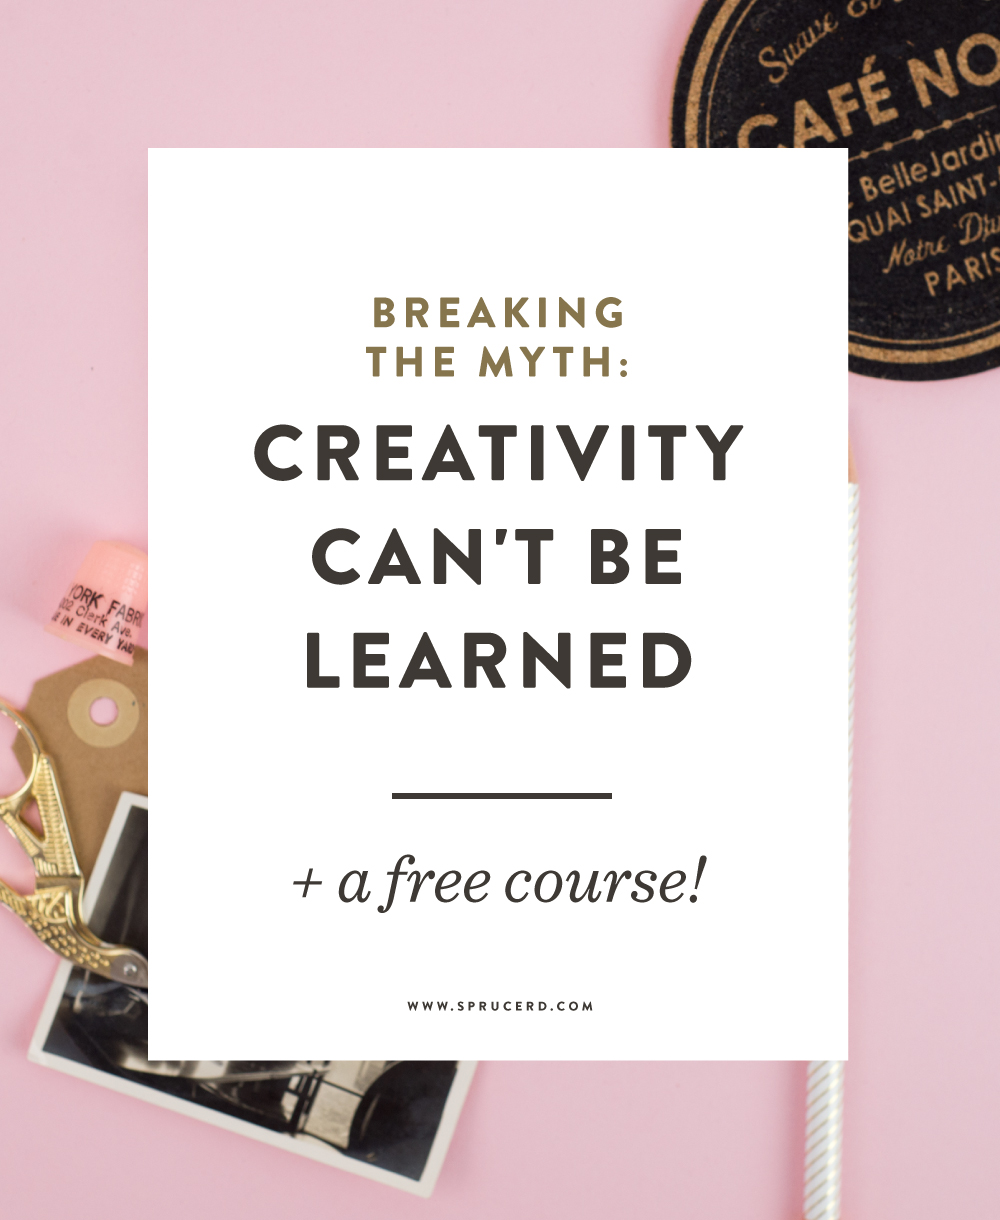 Breaking the myth: Creativity can't be learned | My thoughts on how everyone is creative, no matter the degree, passion or career. How to embrace your creativity and cultivate it in your daily + weekly routine!